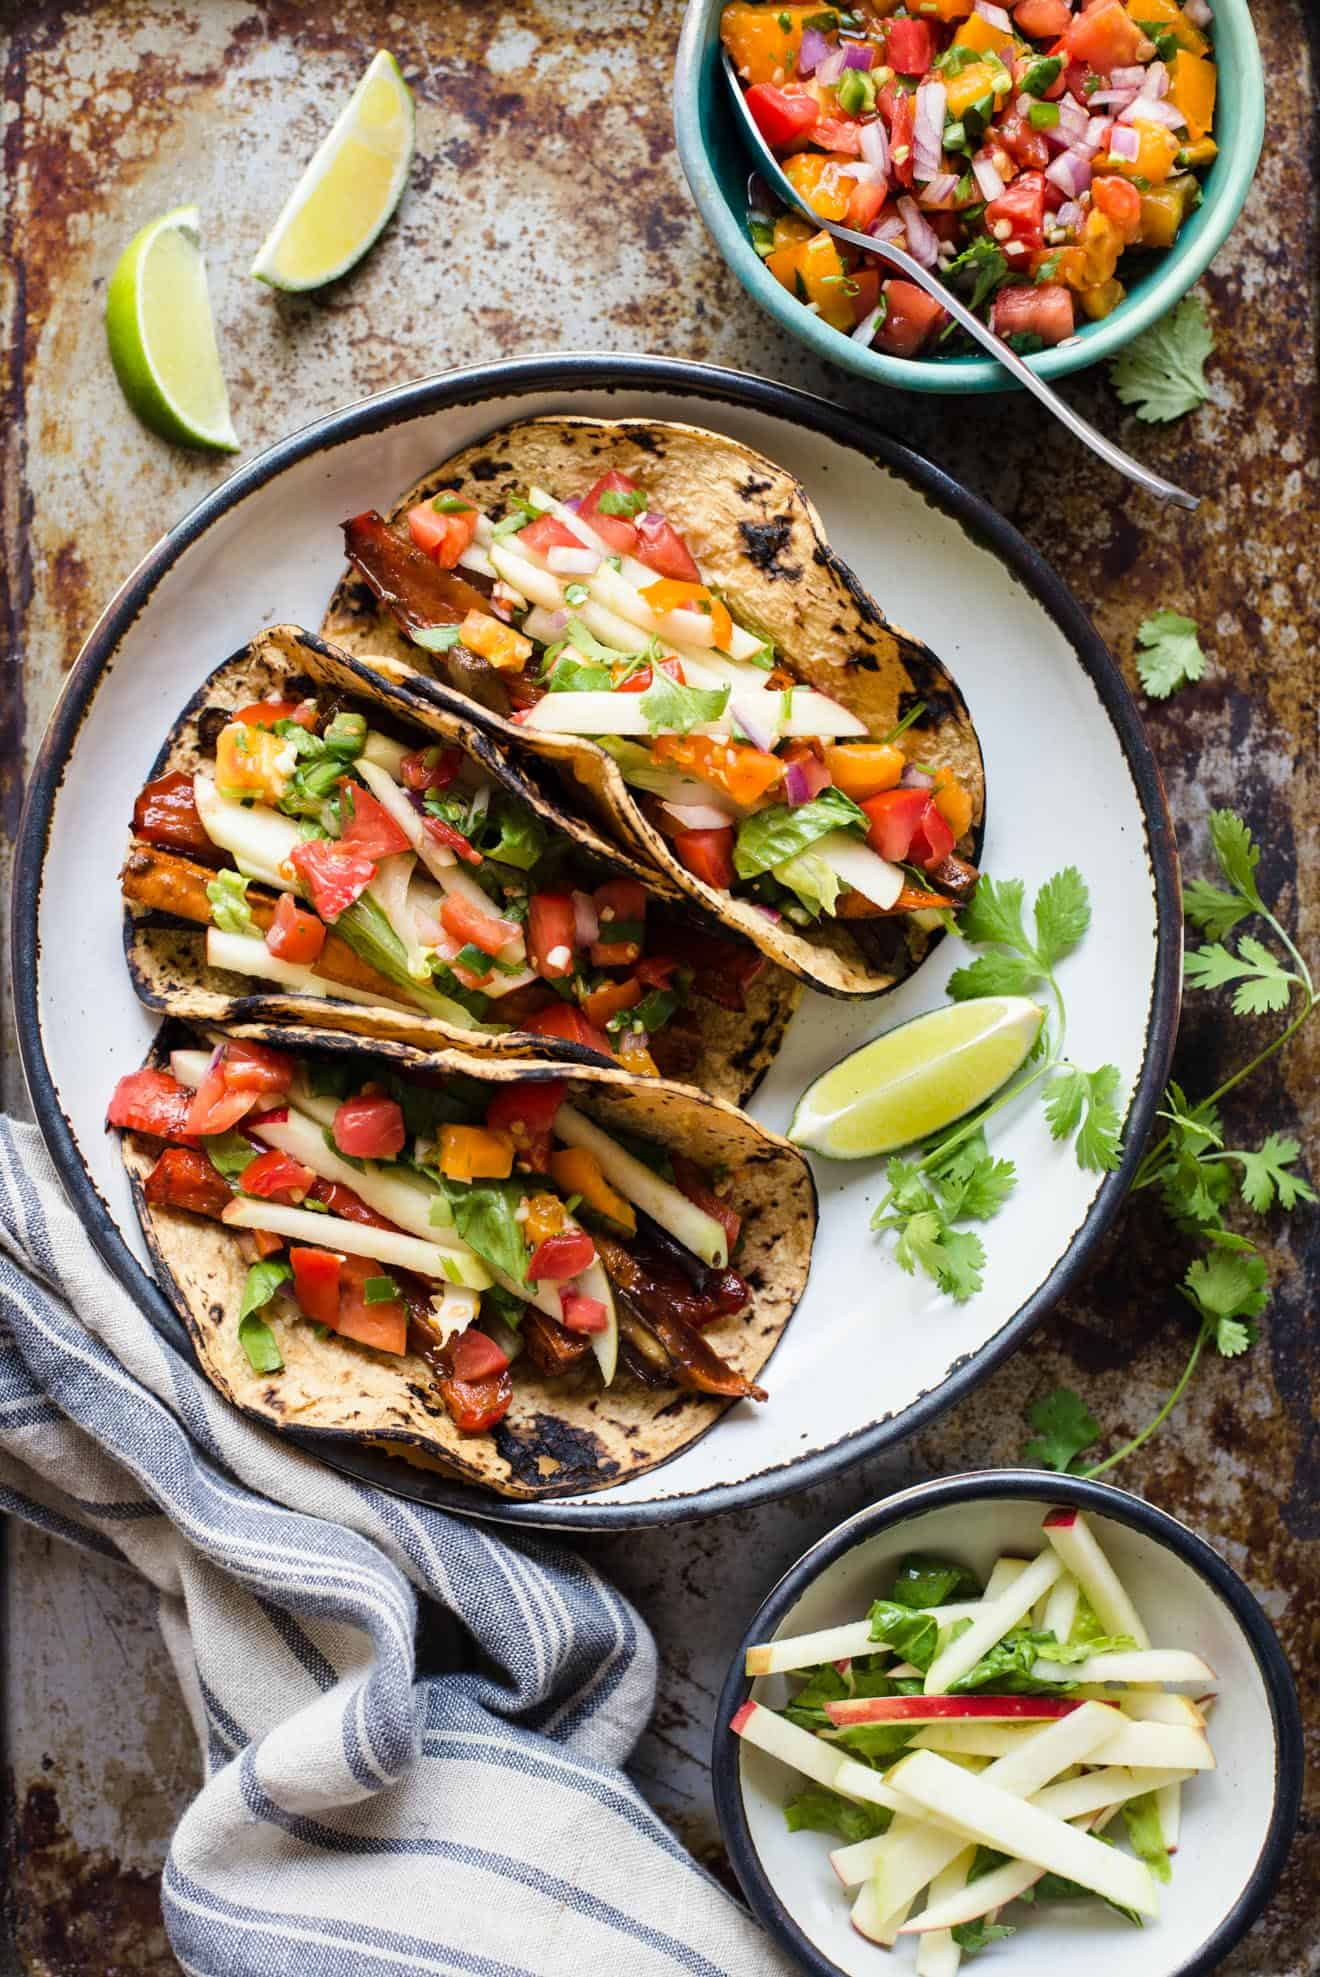 #VEGAN Tamarind Glazed Vegetable Tacos with Apple Slaw - easy weeknight meal!